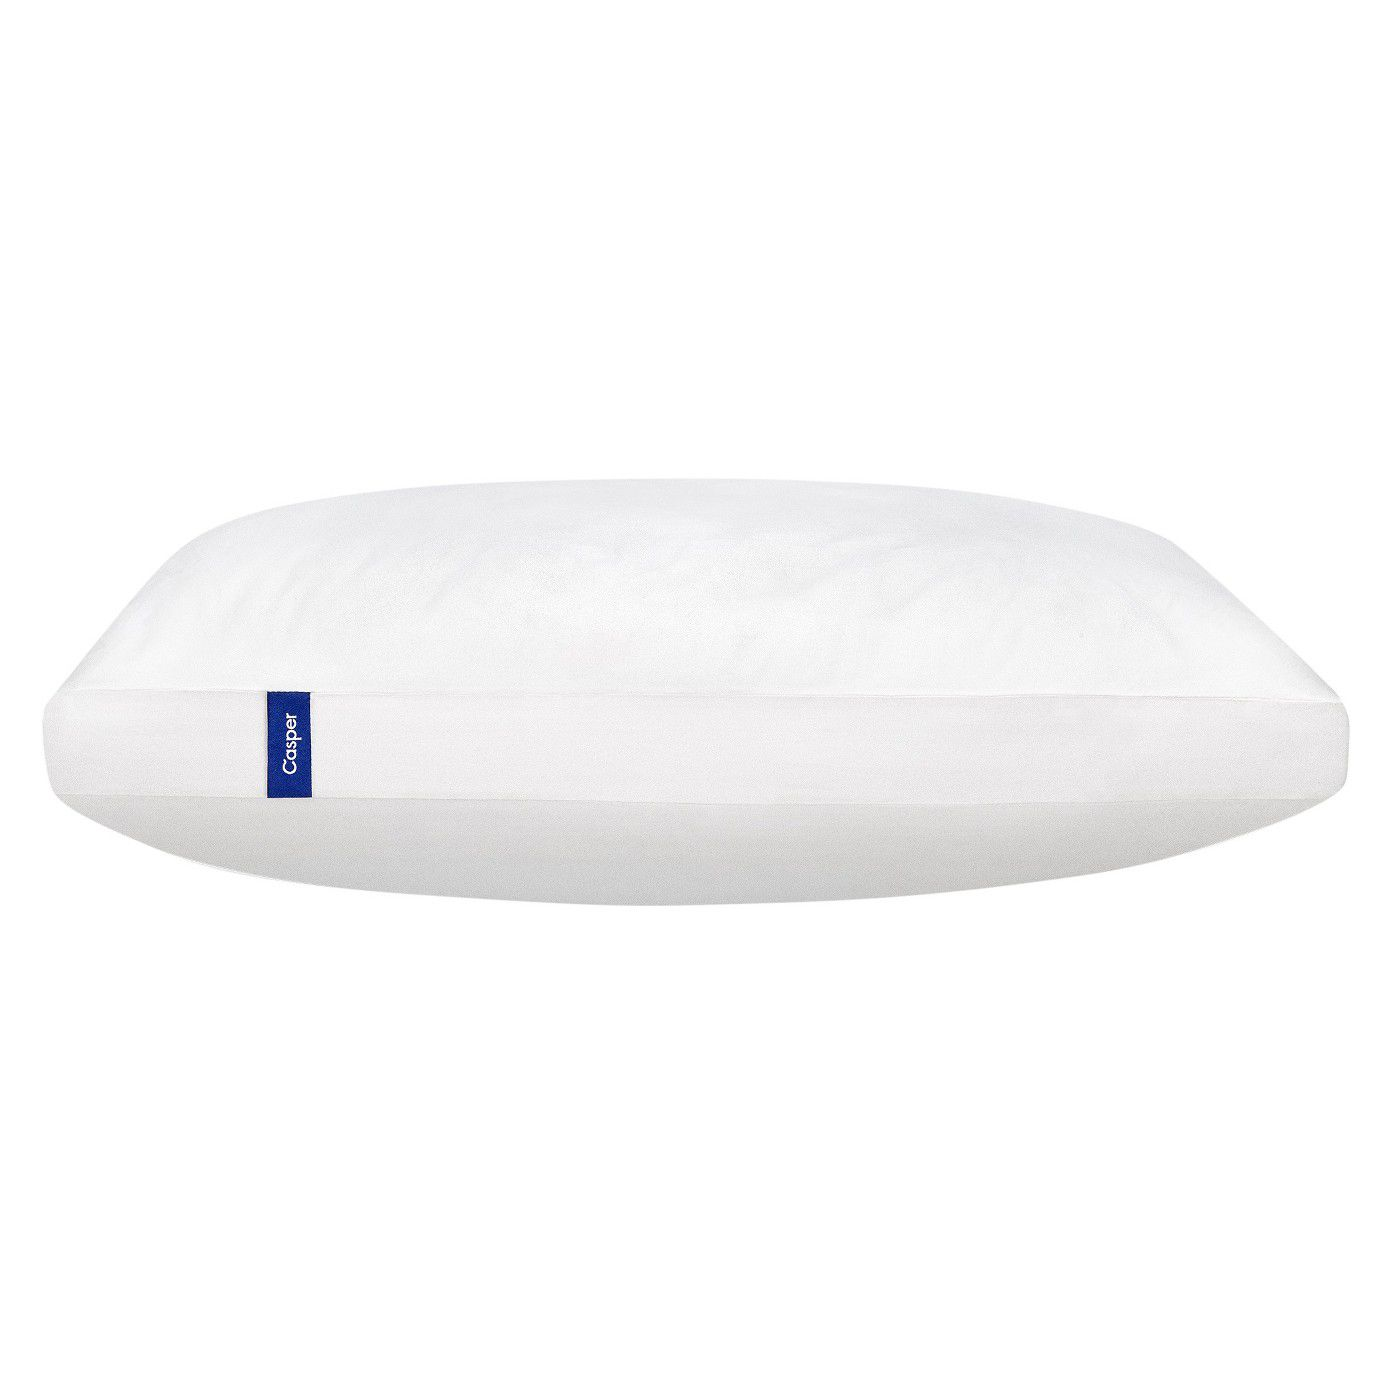 what gray white source ma case modern waterproof comforter sale plain primark vision black bamboo argos sets top hotel pillowcases similar king cheap sweetgalas duvet duvets comfort linen bedding full cover mean property of down chenille tesco protector set covers pillow size ikea uk mattress